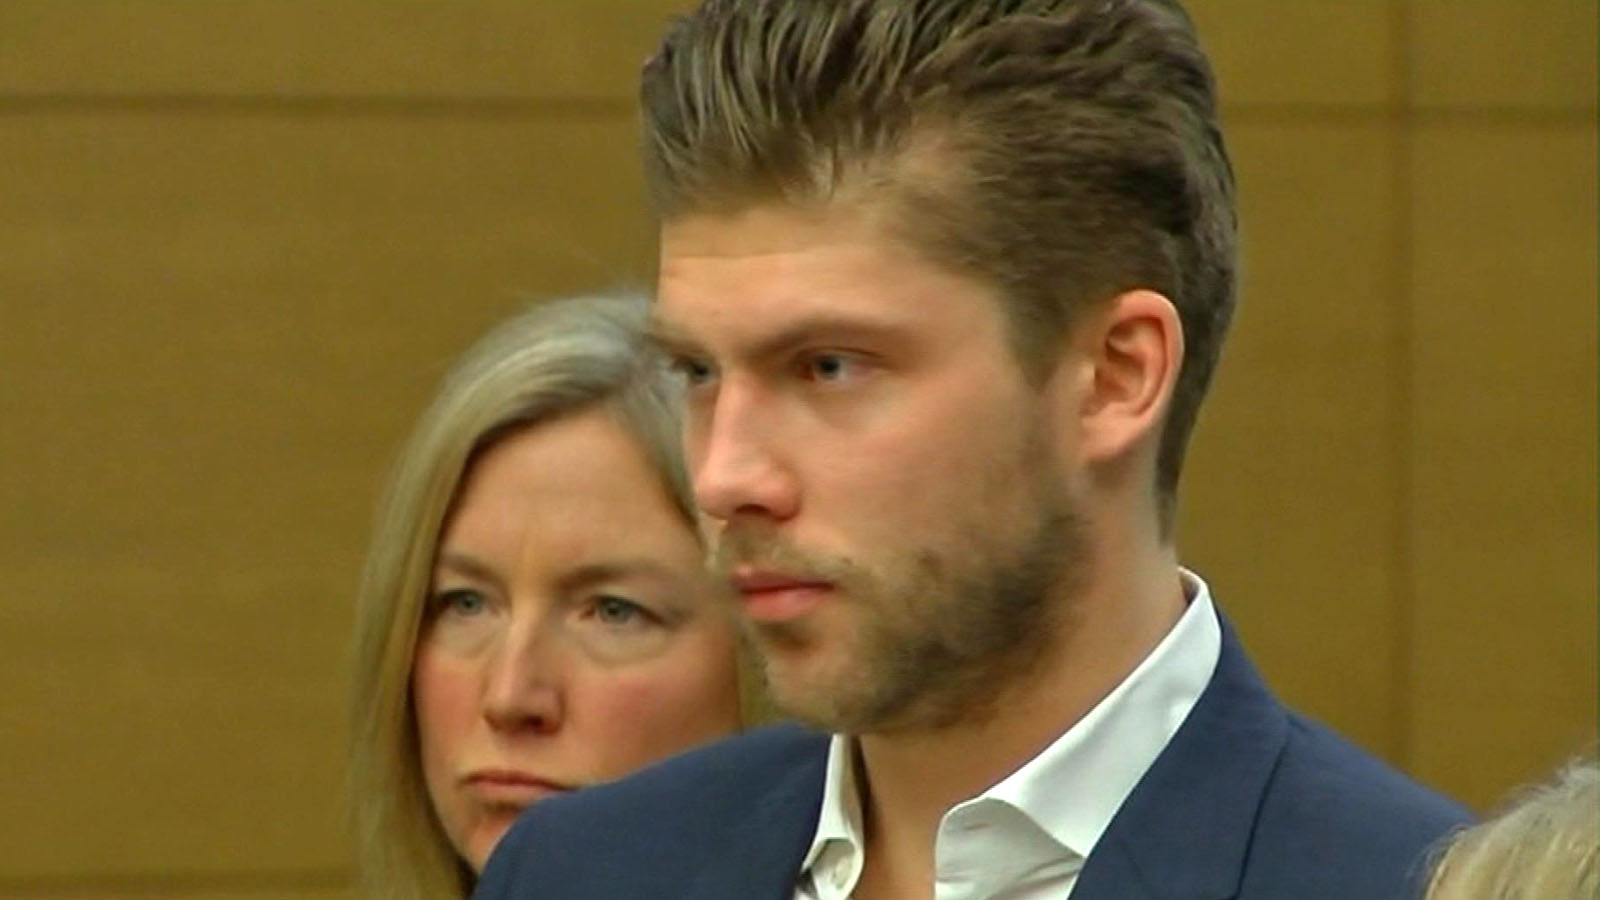 Semyon Varlamov in Denver court on Dec. 2, 2013. (credit: CBS)